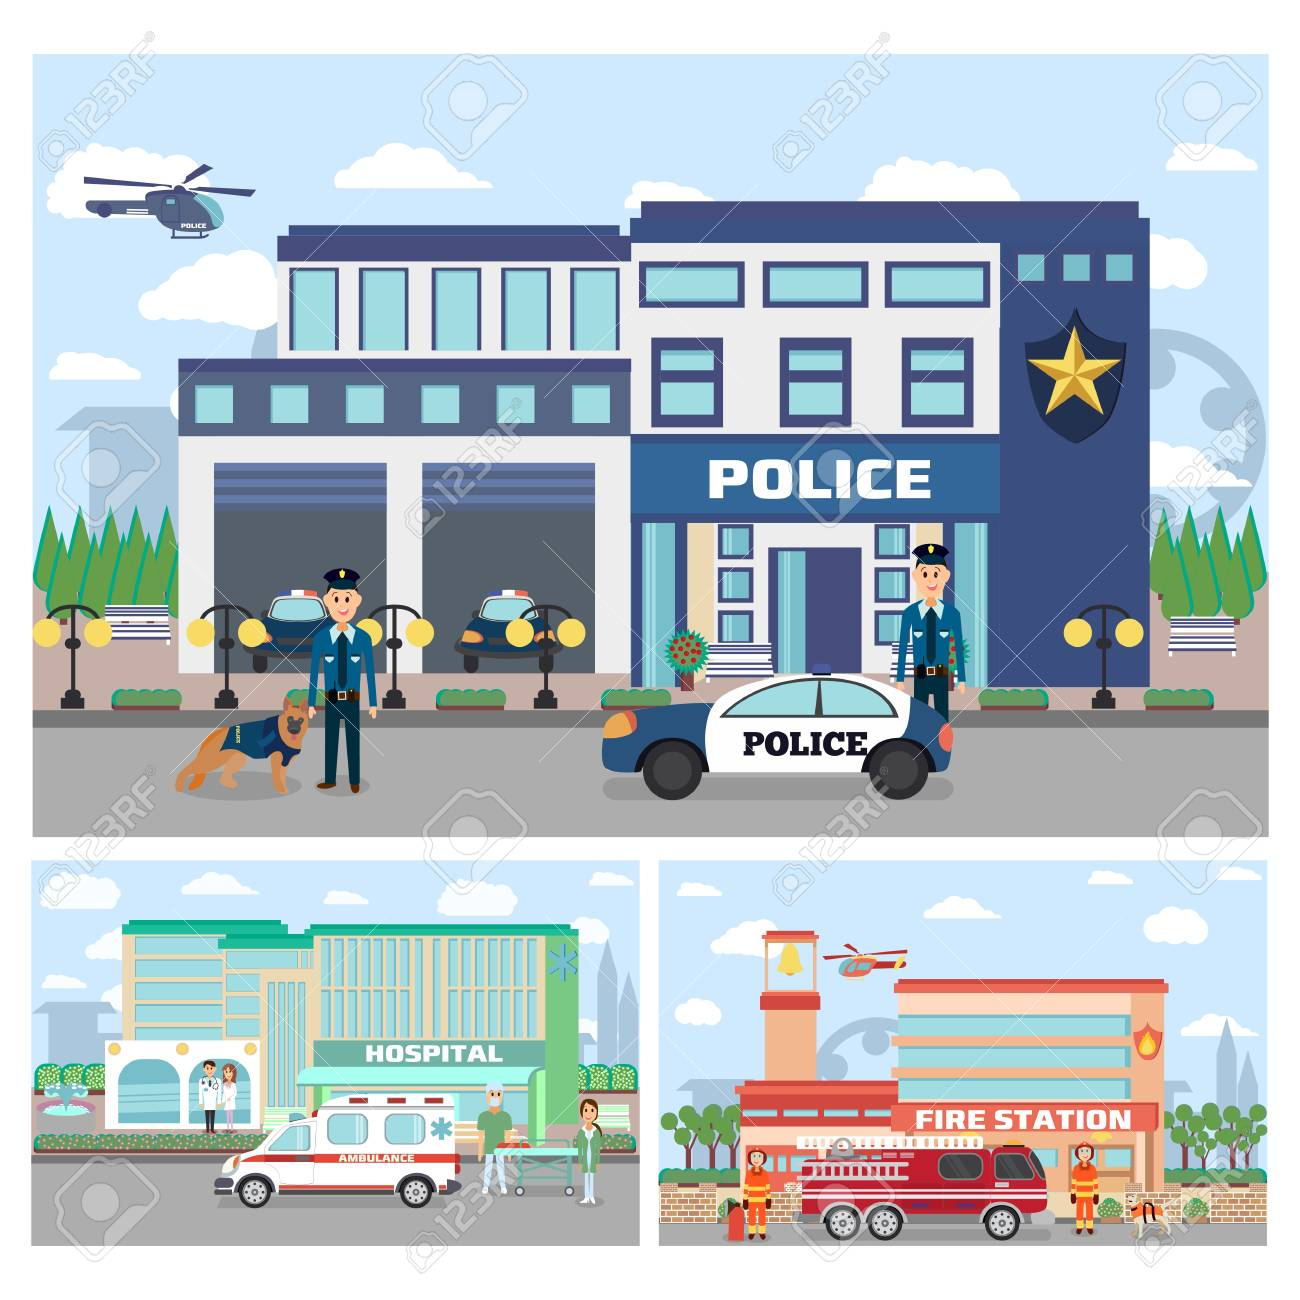 20+ Fire Brigade clipart, images, graphics for free (gif, png, jpg)